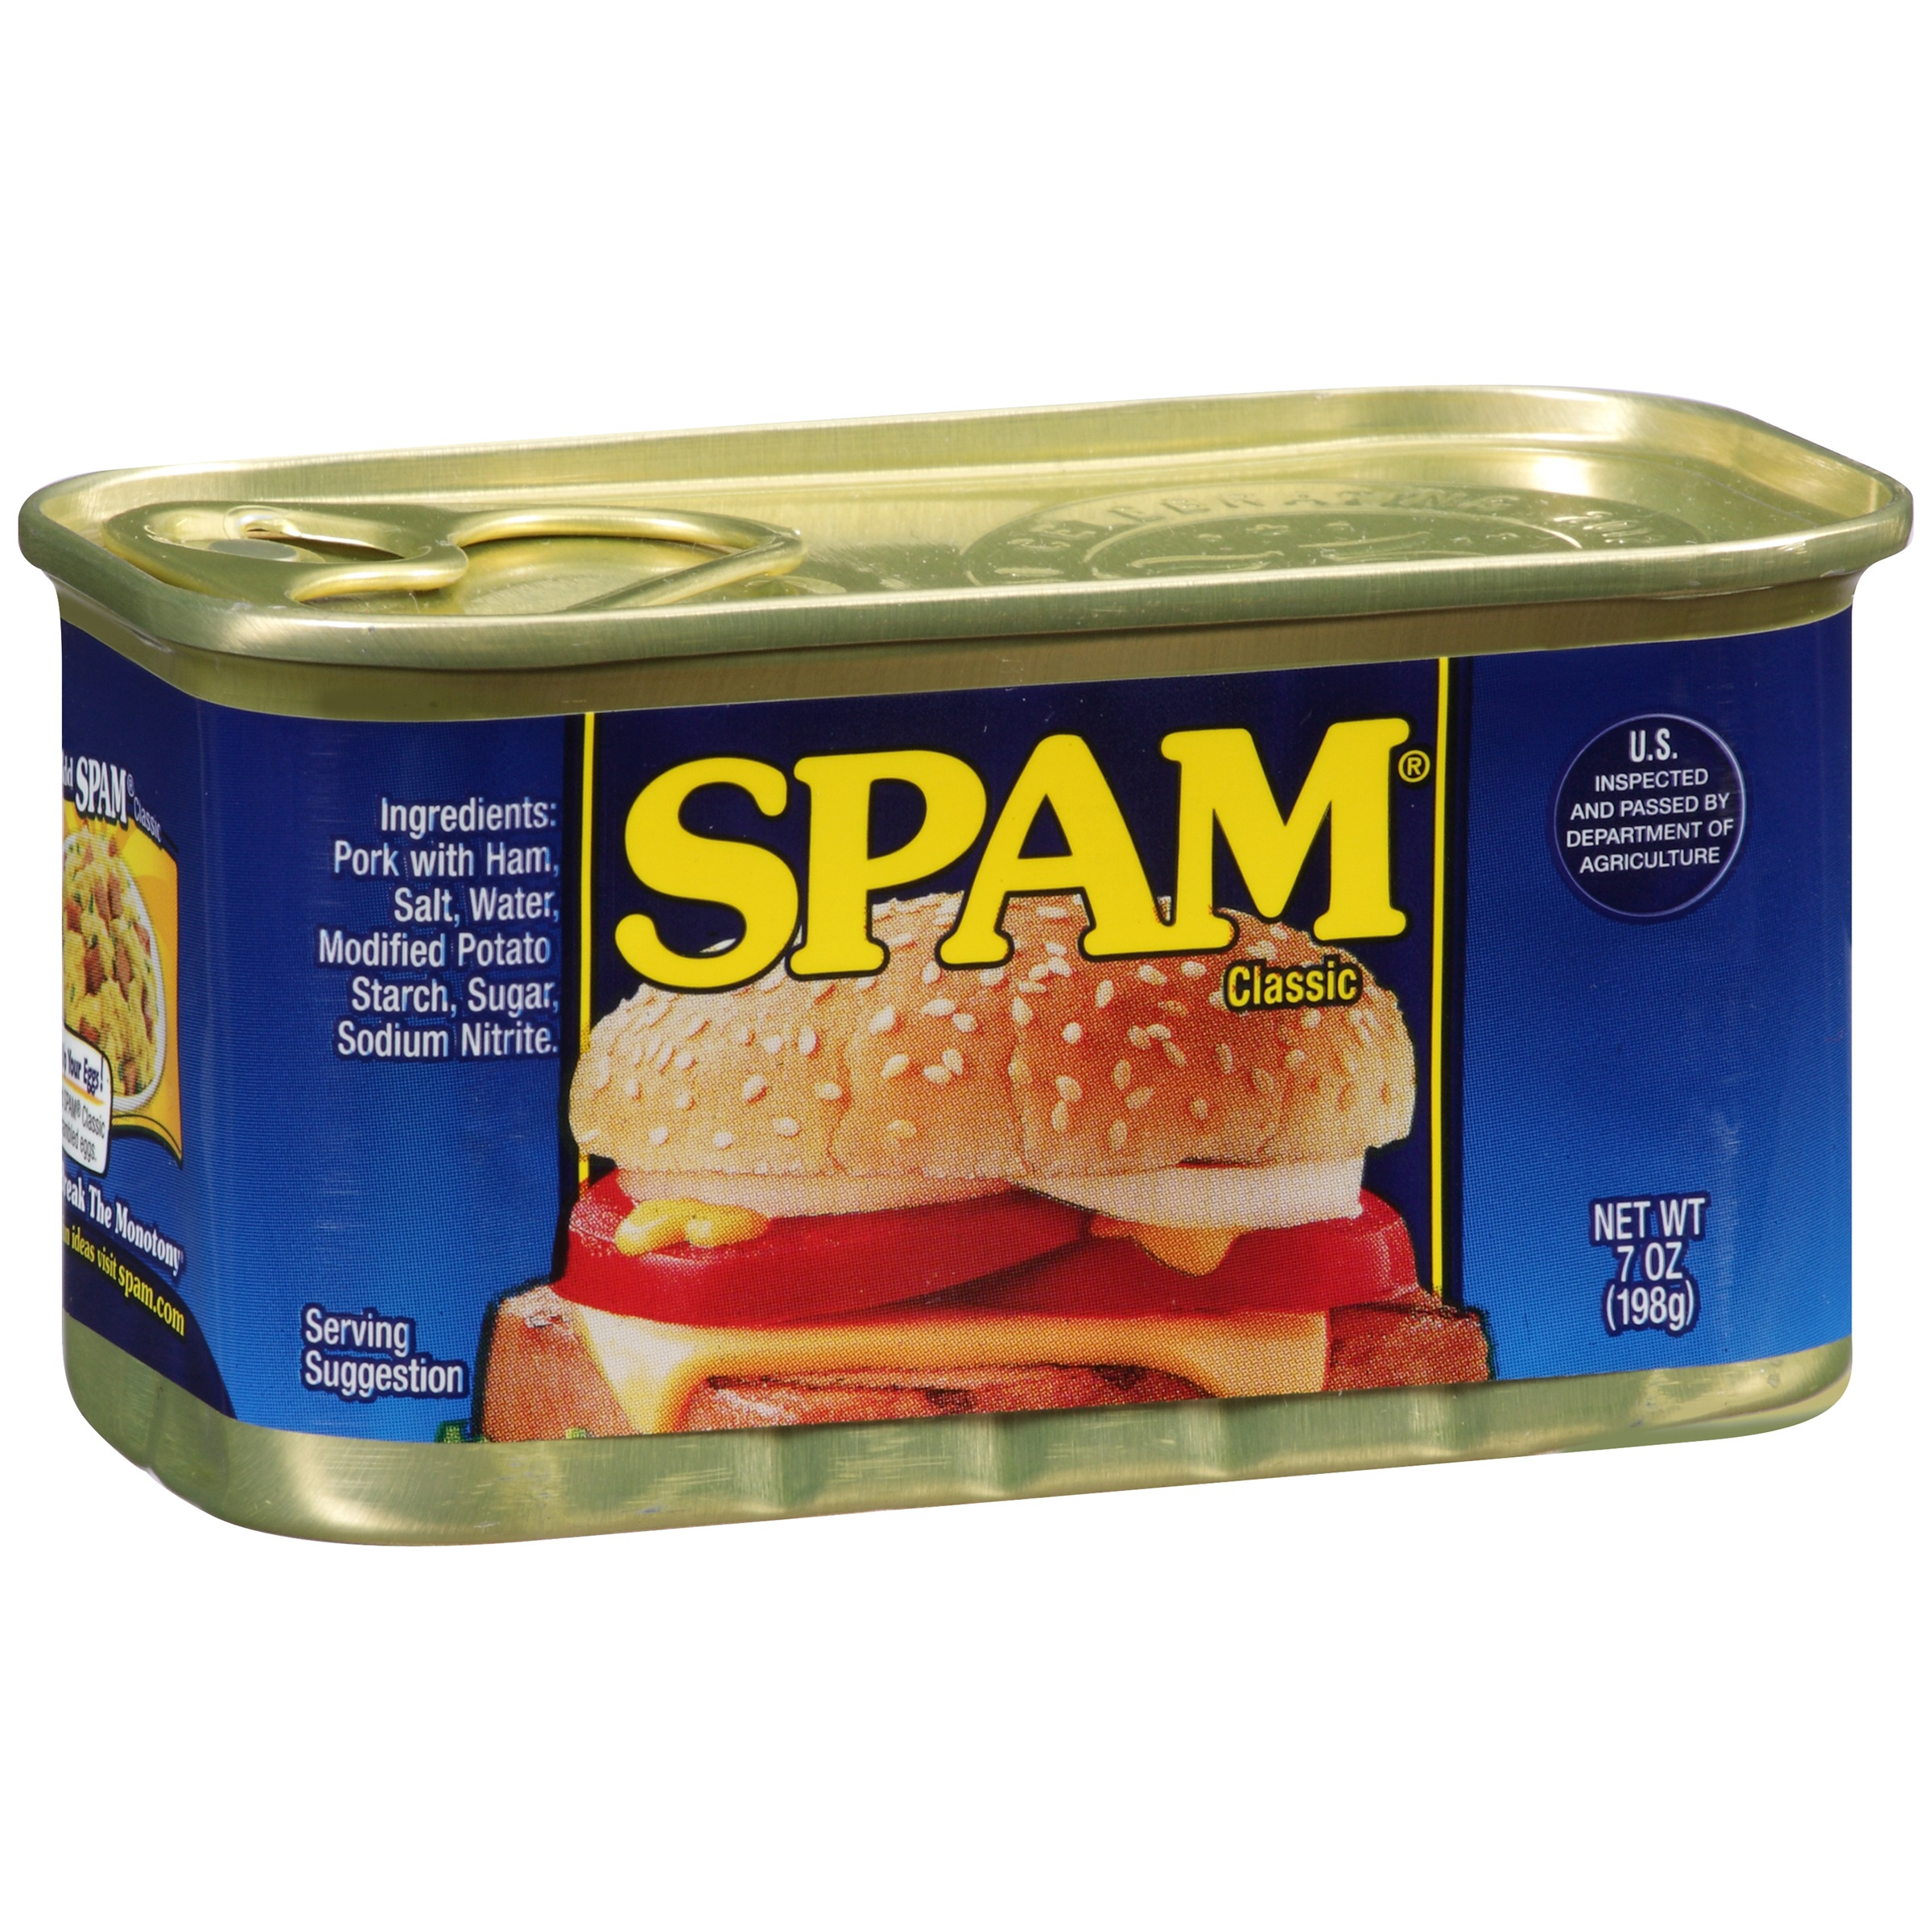 SPAM Classic Canned Meat 7 oz. Can by Hormel Foods Corporation